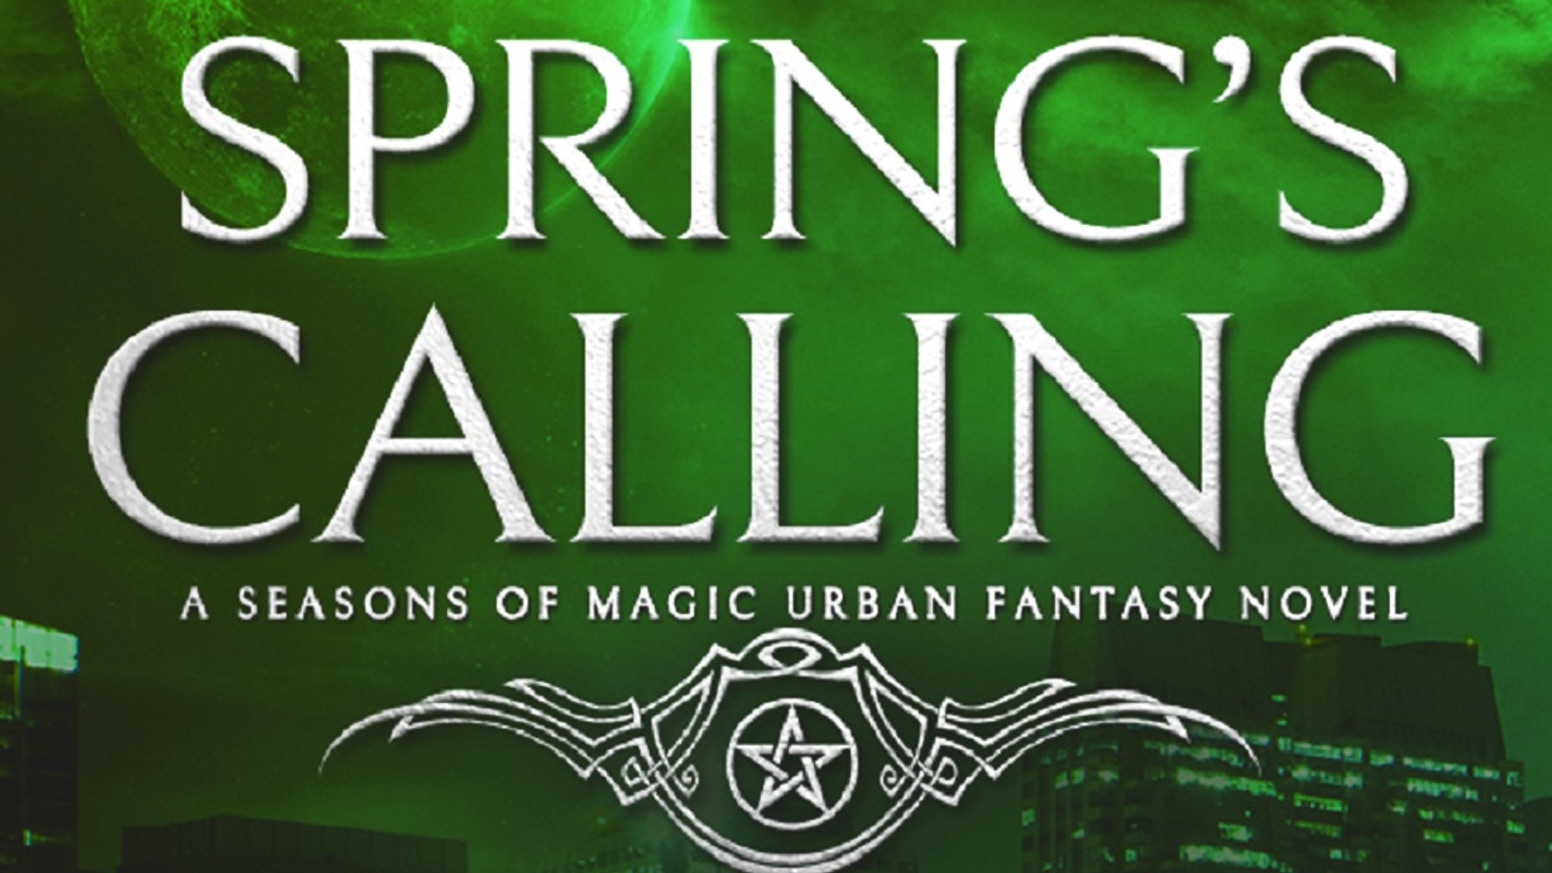 Murder. Magic. Destiny. Pre-order this exciting new urban fantasy set in Boston by pledging today.